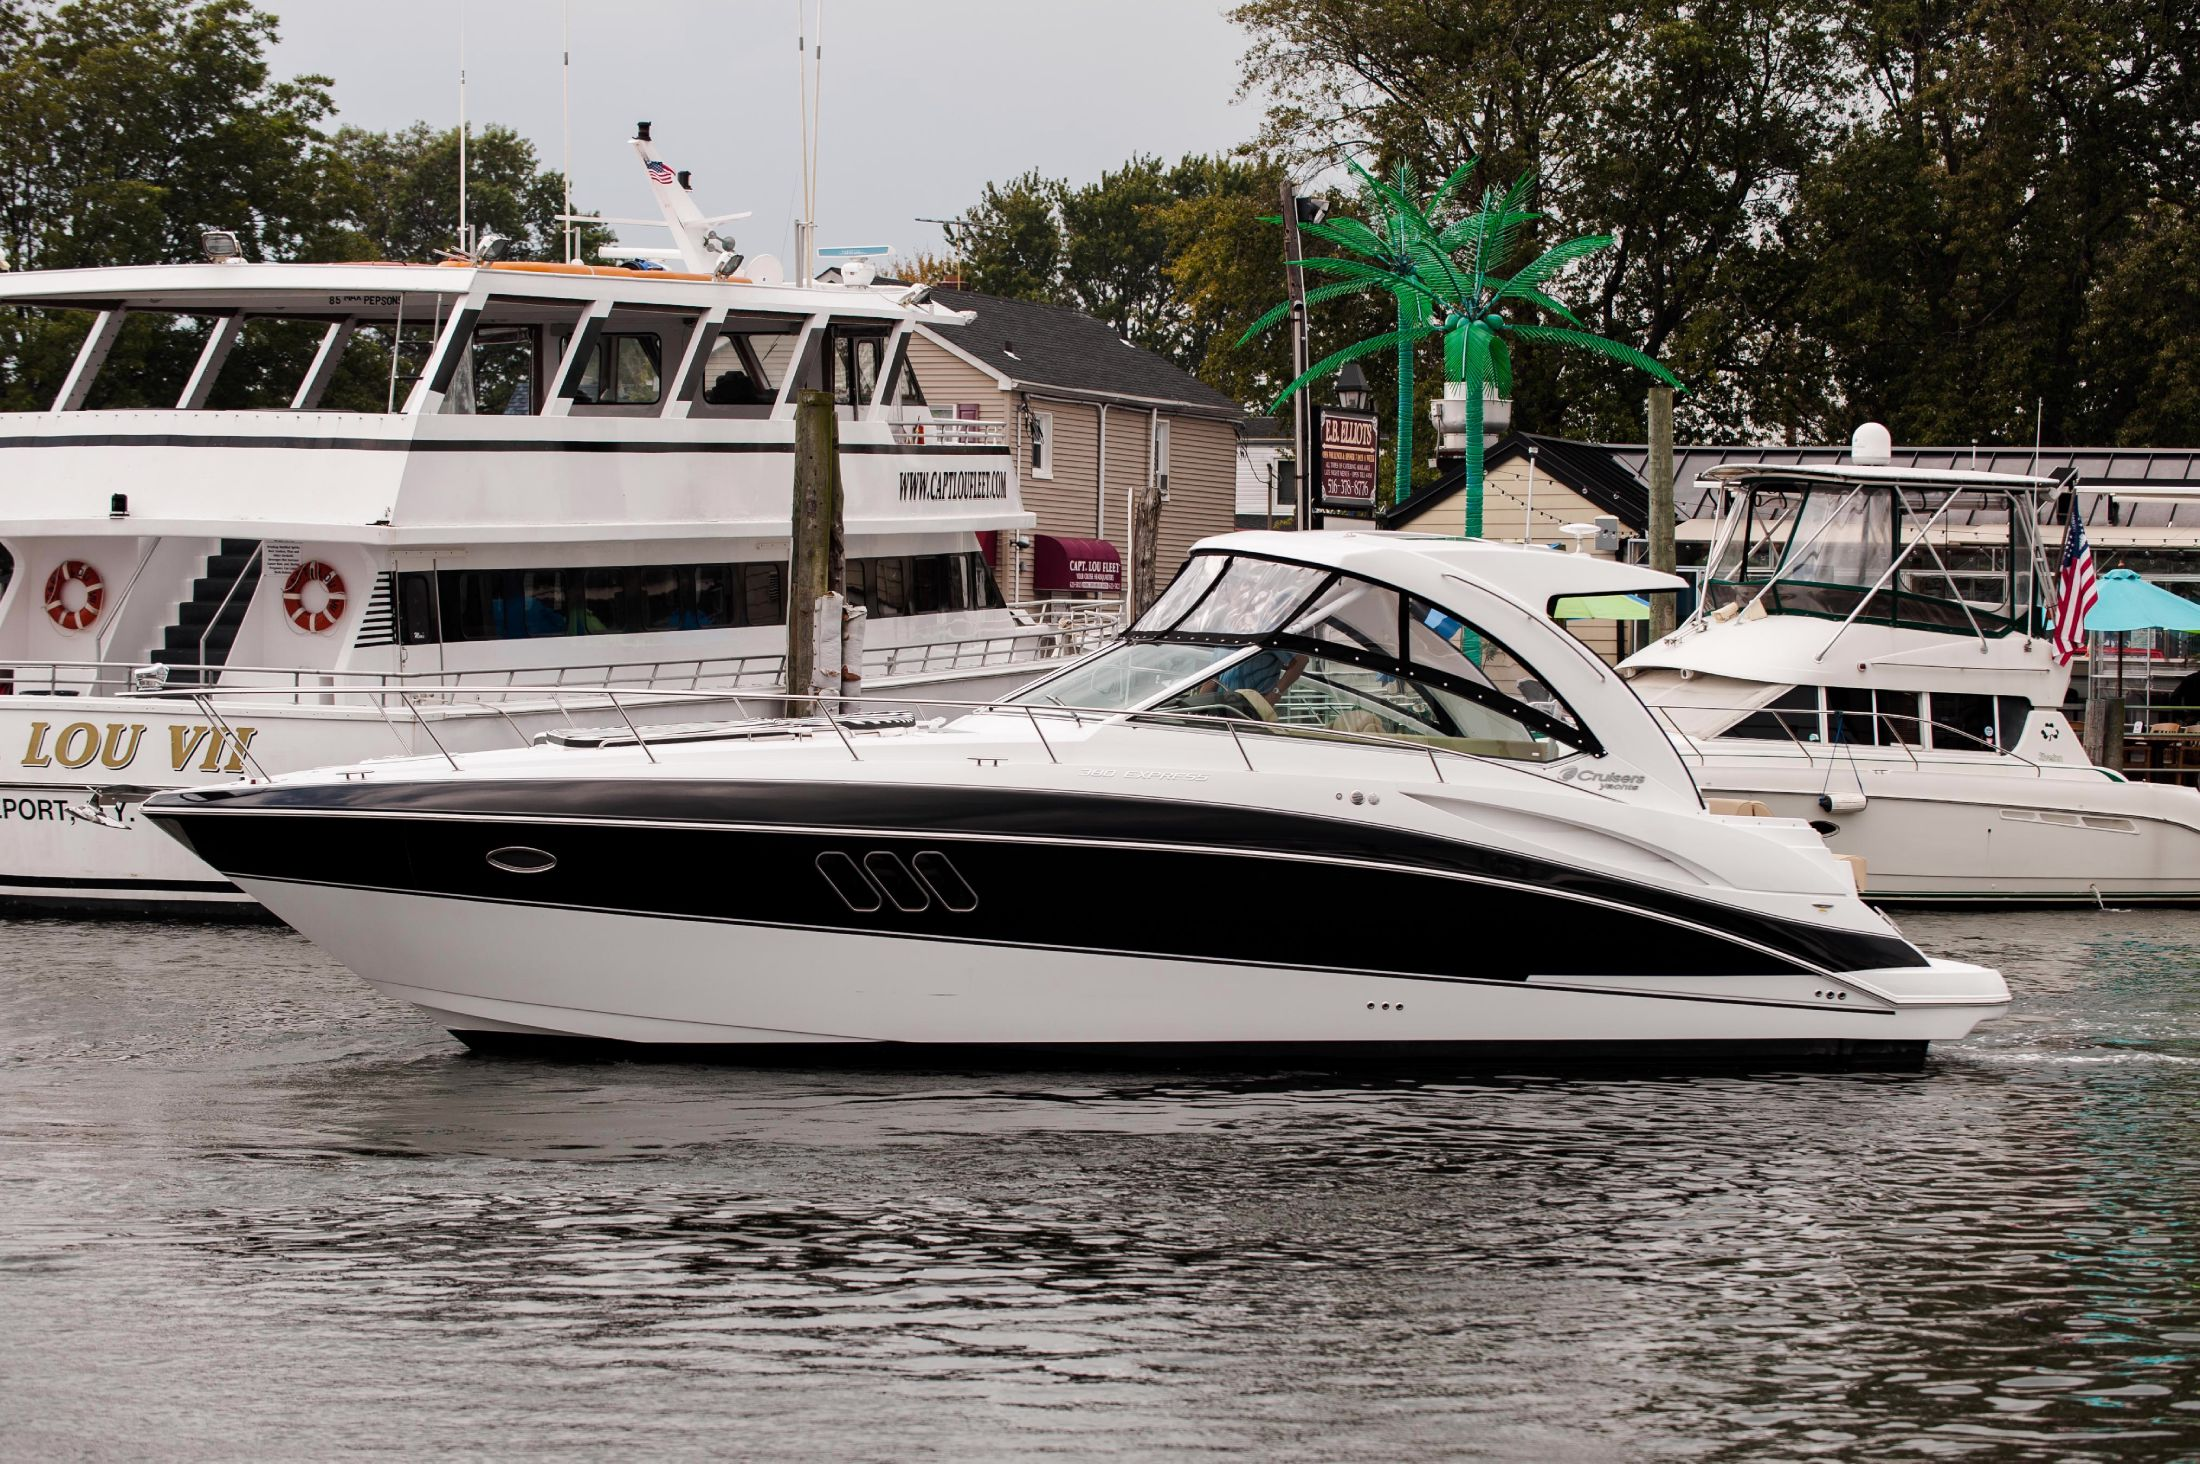 2018 Cruisers 380 Express Power Boat For Sale Www Yachtworld Com